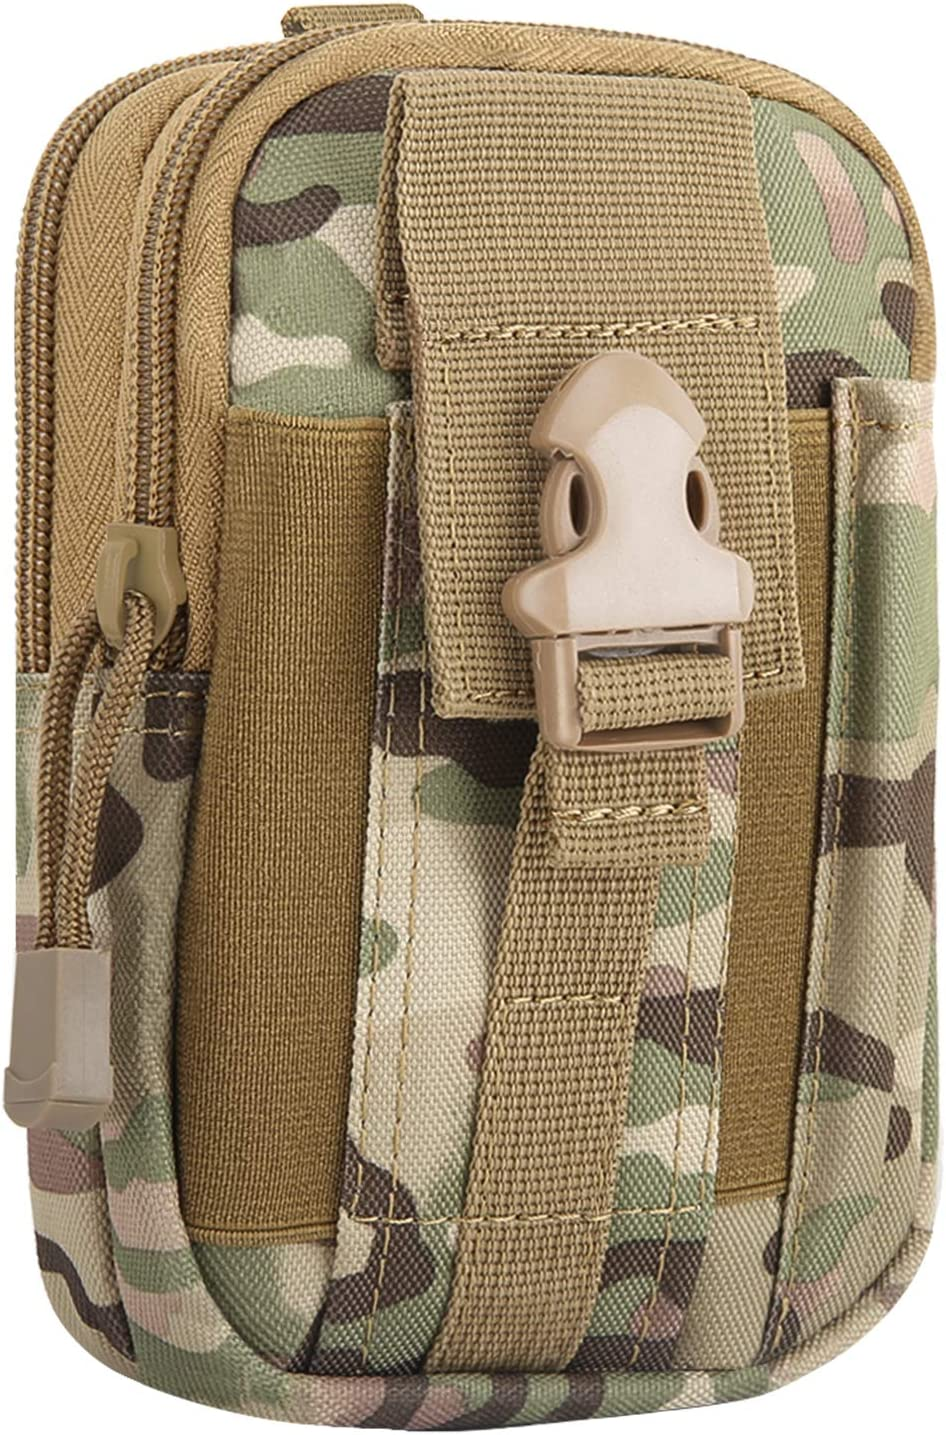 """MoKo Universal Outdoor Waist Bag, Molle Pouch Camping Belt Purse Fit 6.8"""" Phone, iPhone SE 2020/11 Pro/11/11 Pro Max/Xs Max/XR/Xs/X, Galaxy Note 10/Note 10 Plus/S10e/S10/S10 Plus - Camouflage"""